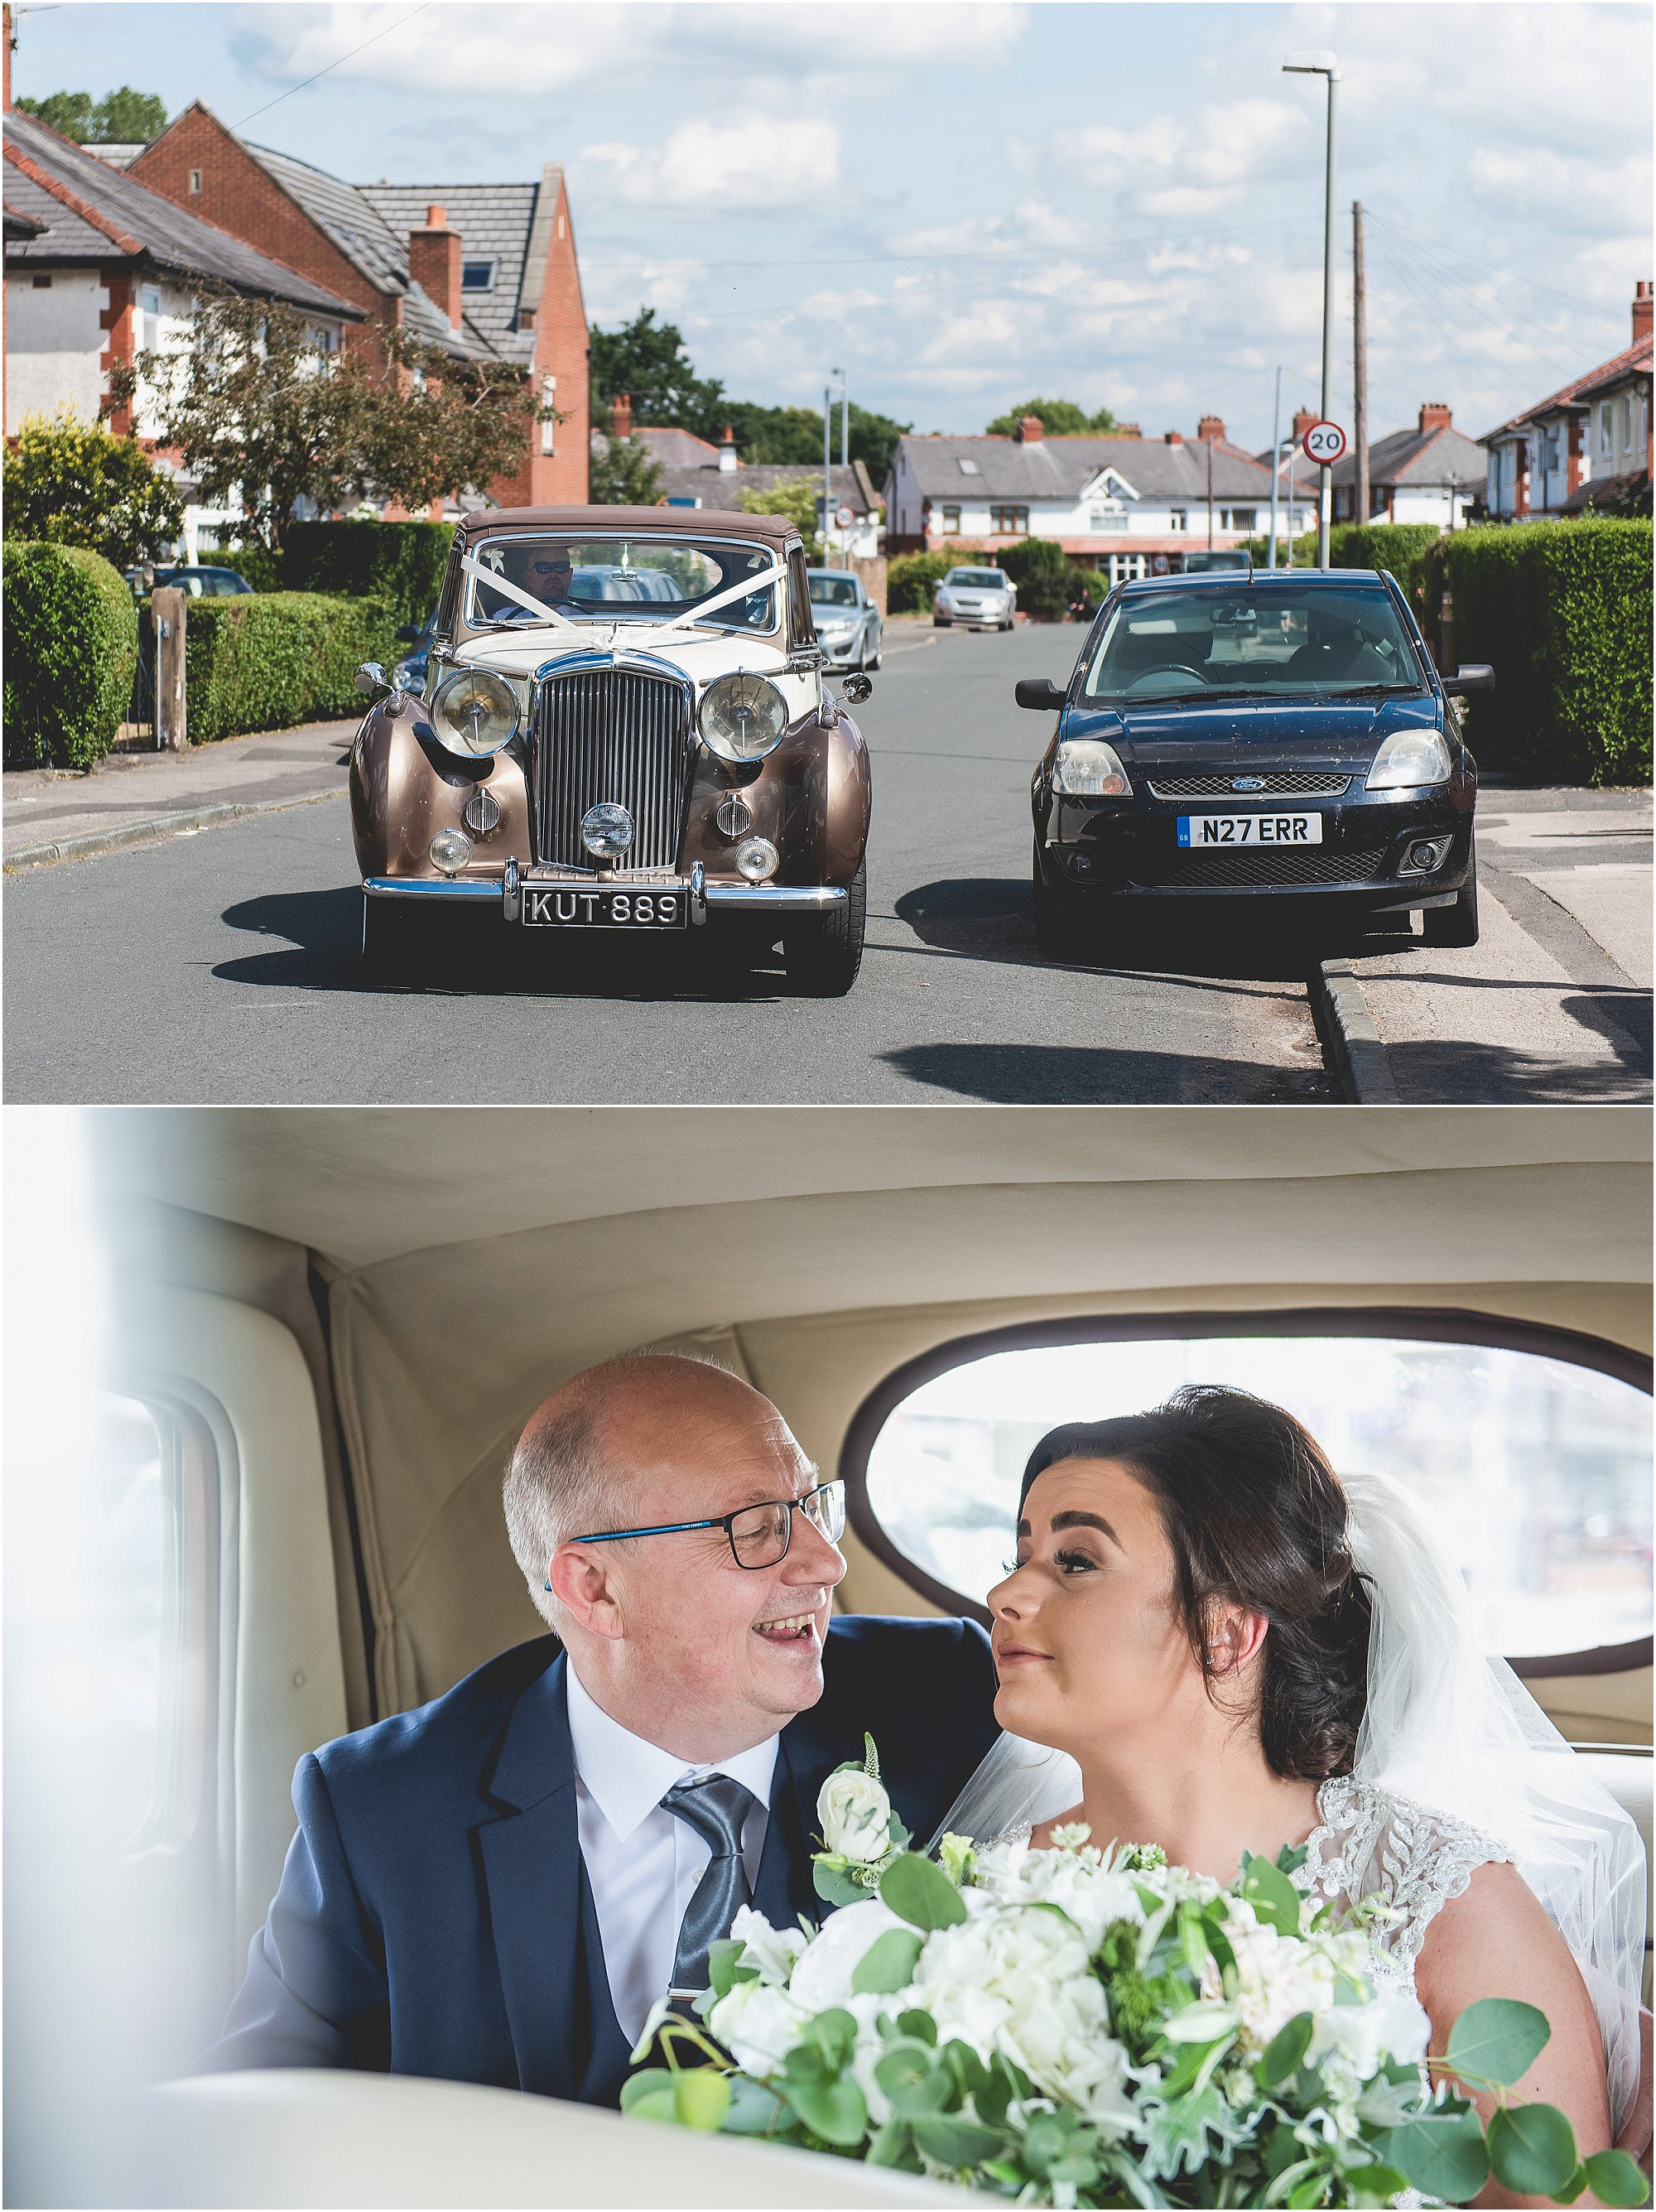 Bridal car with bride and father of the bride